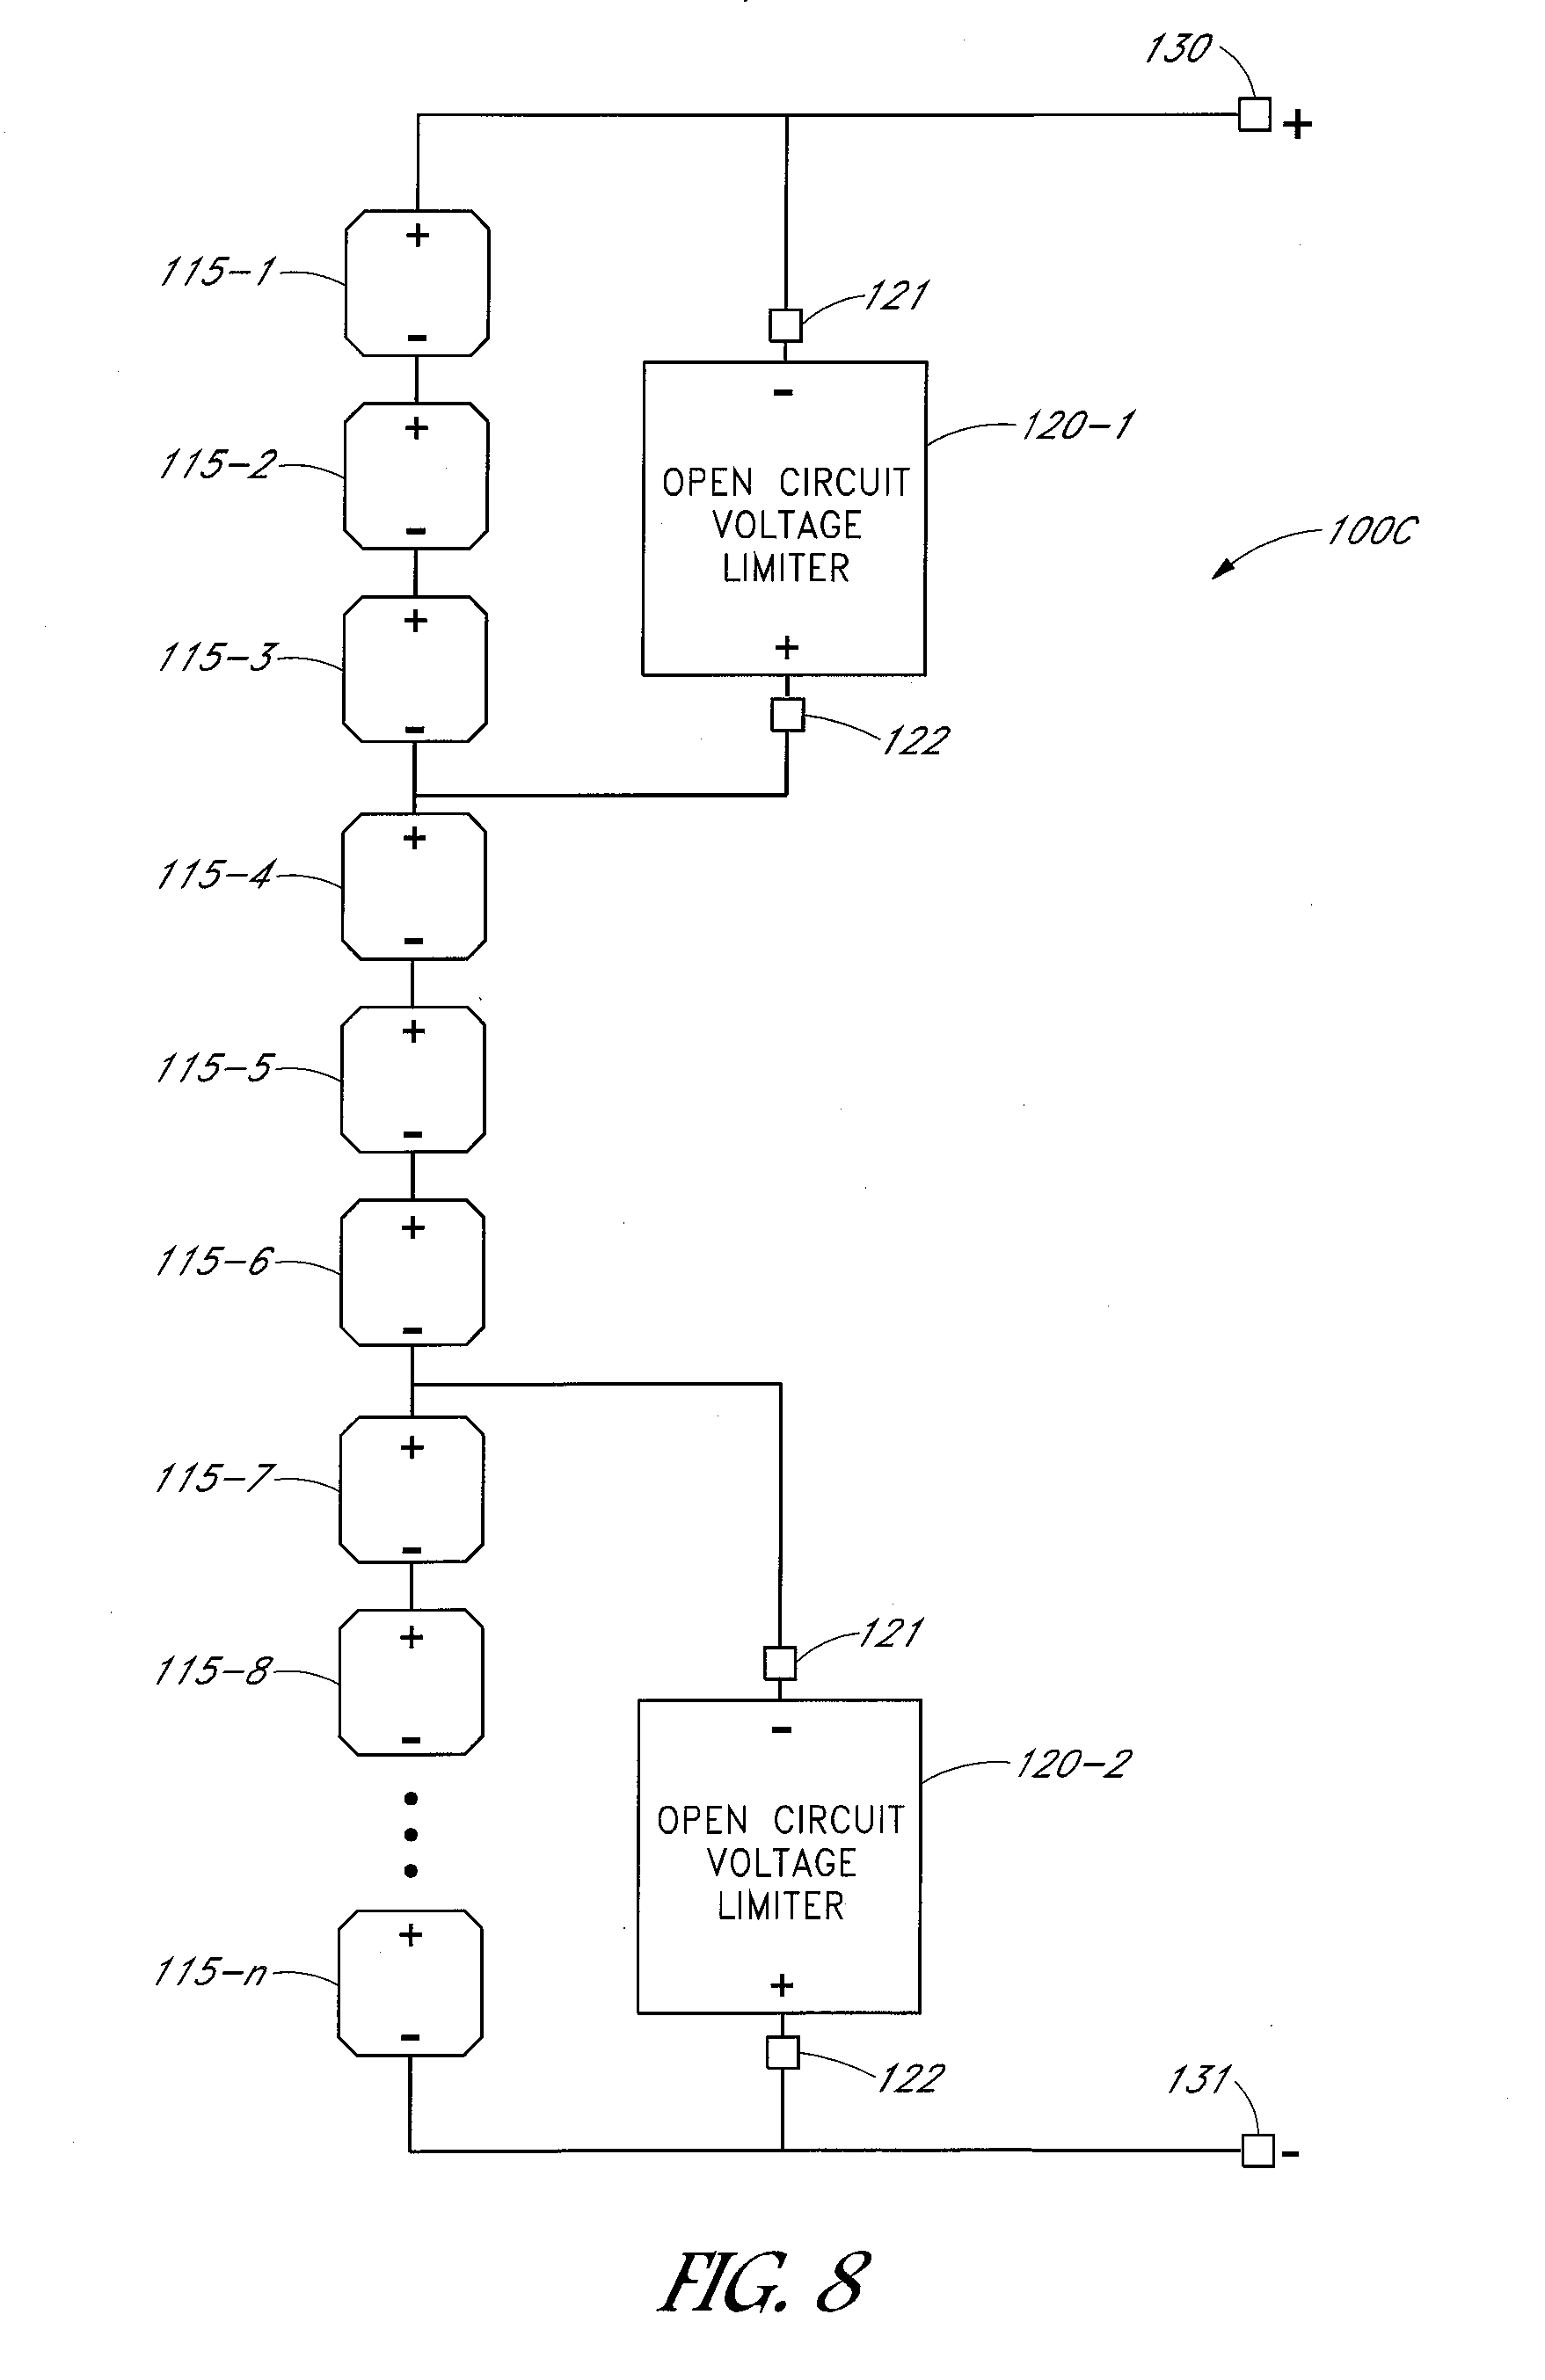 Patent Us20130163137 Circuits And Methods For Limiting Open Circuit Diagram Drawing